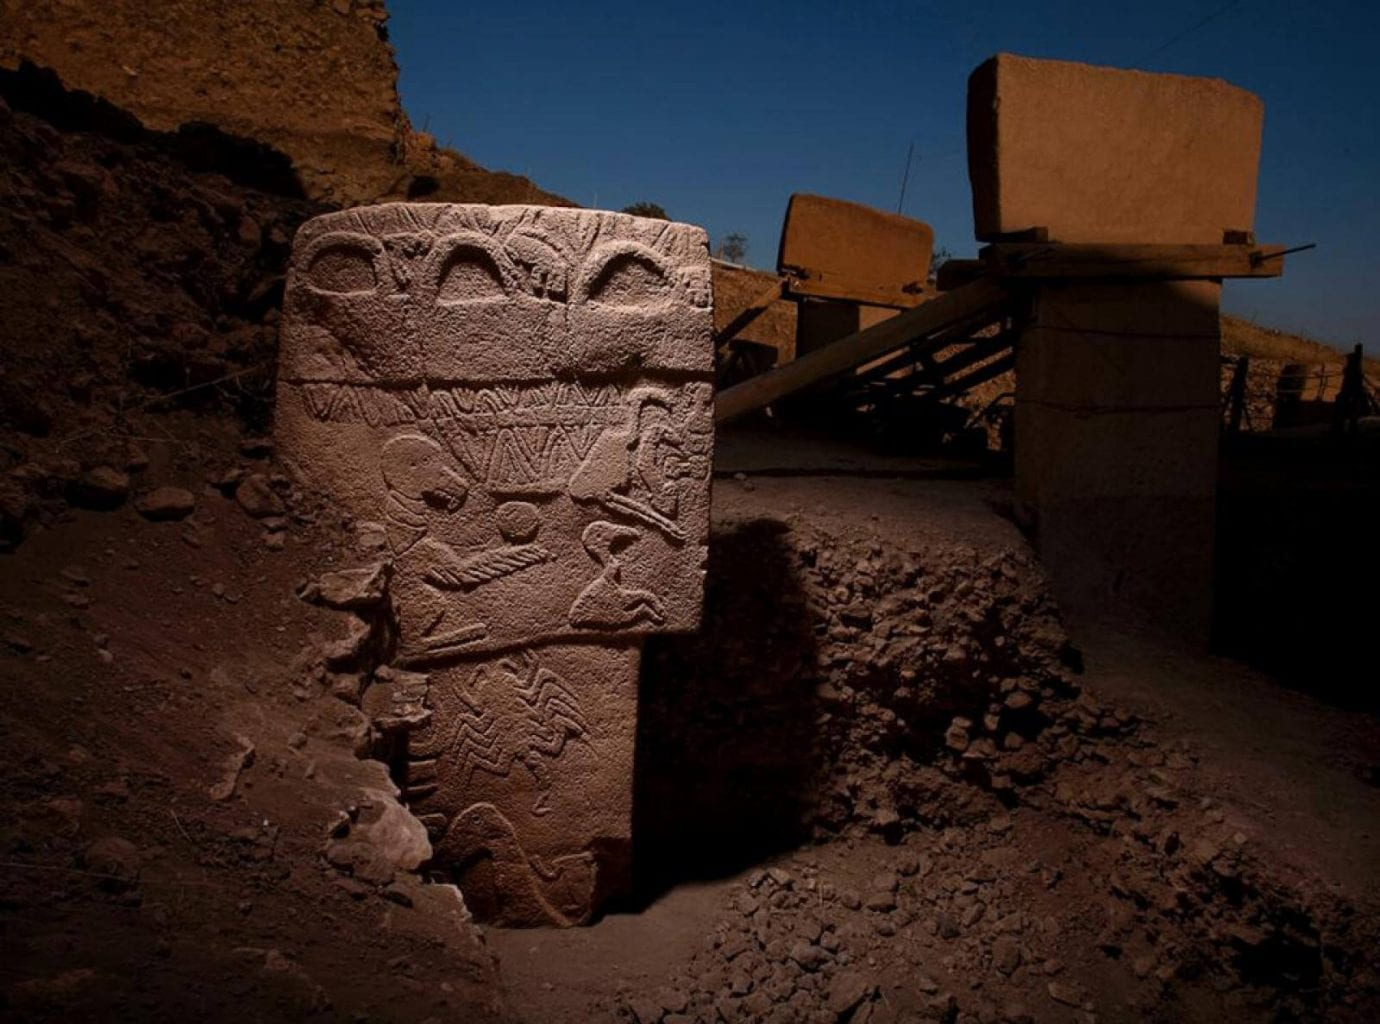 The Vulture Stone of Gobekli Tepe. Credit: The Human Origin Project